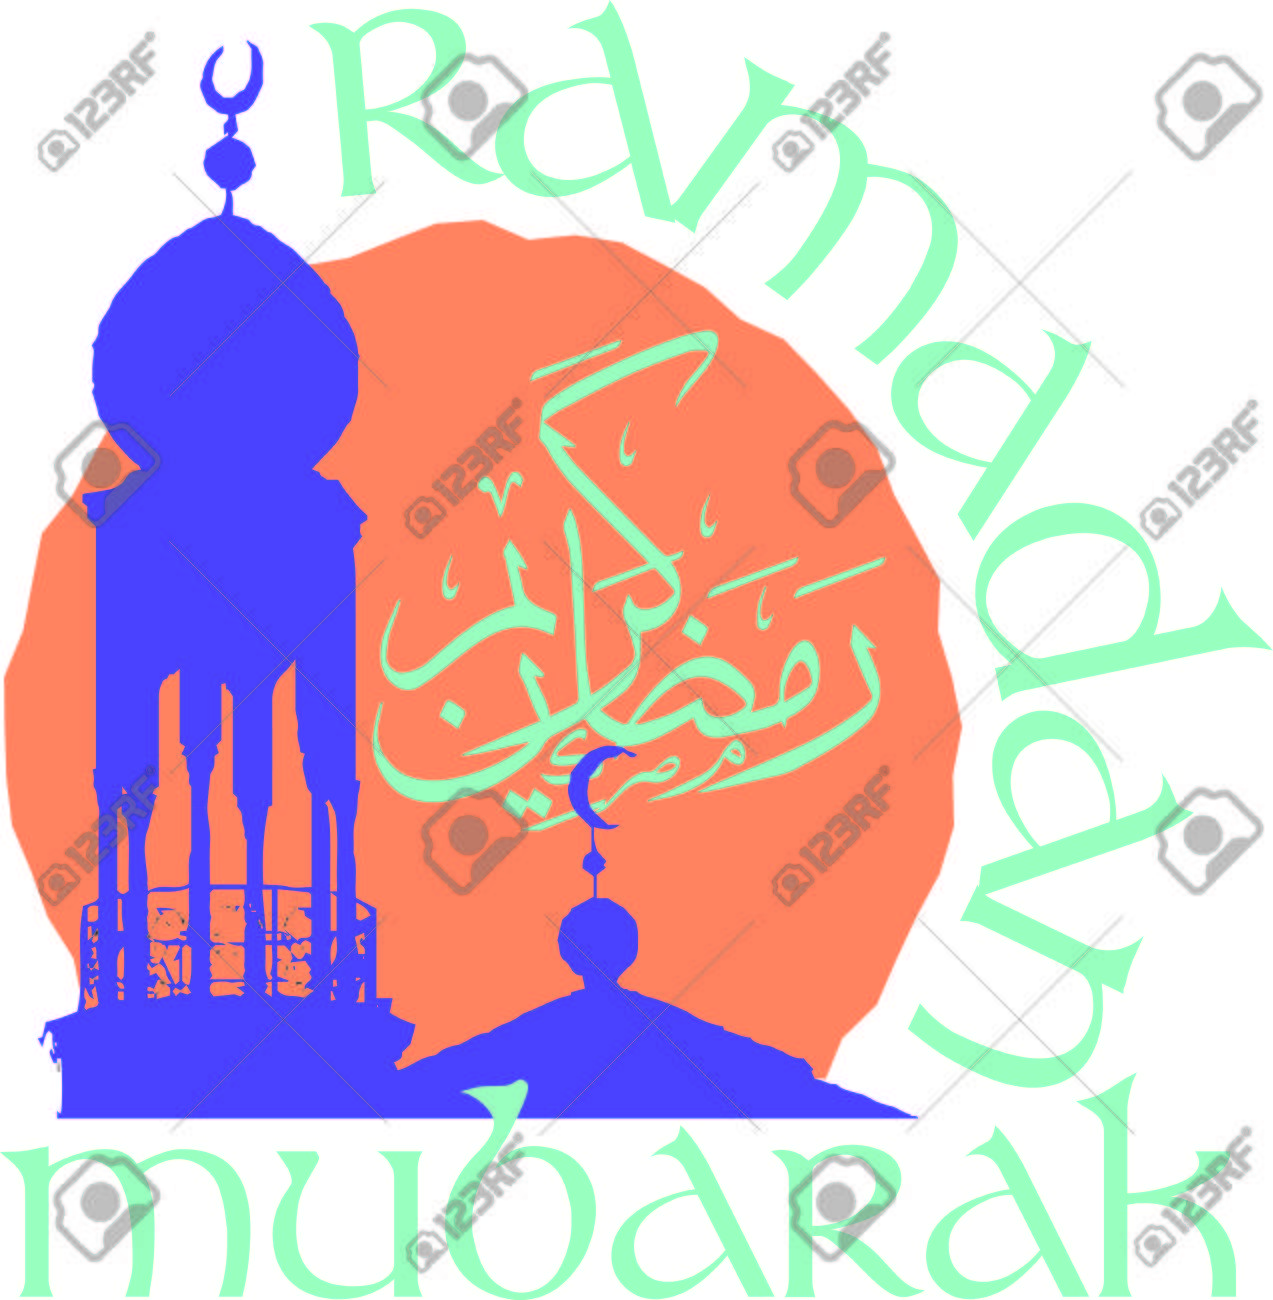 1273x1300 Personalize Your Ramadan Project With This Neat Design. This